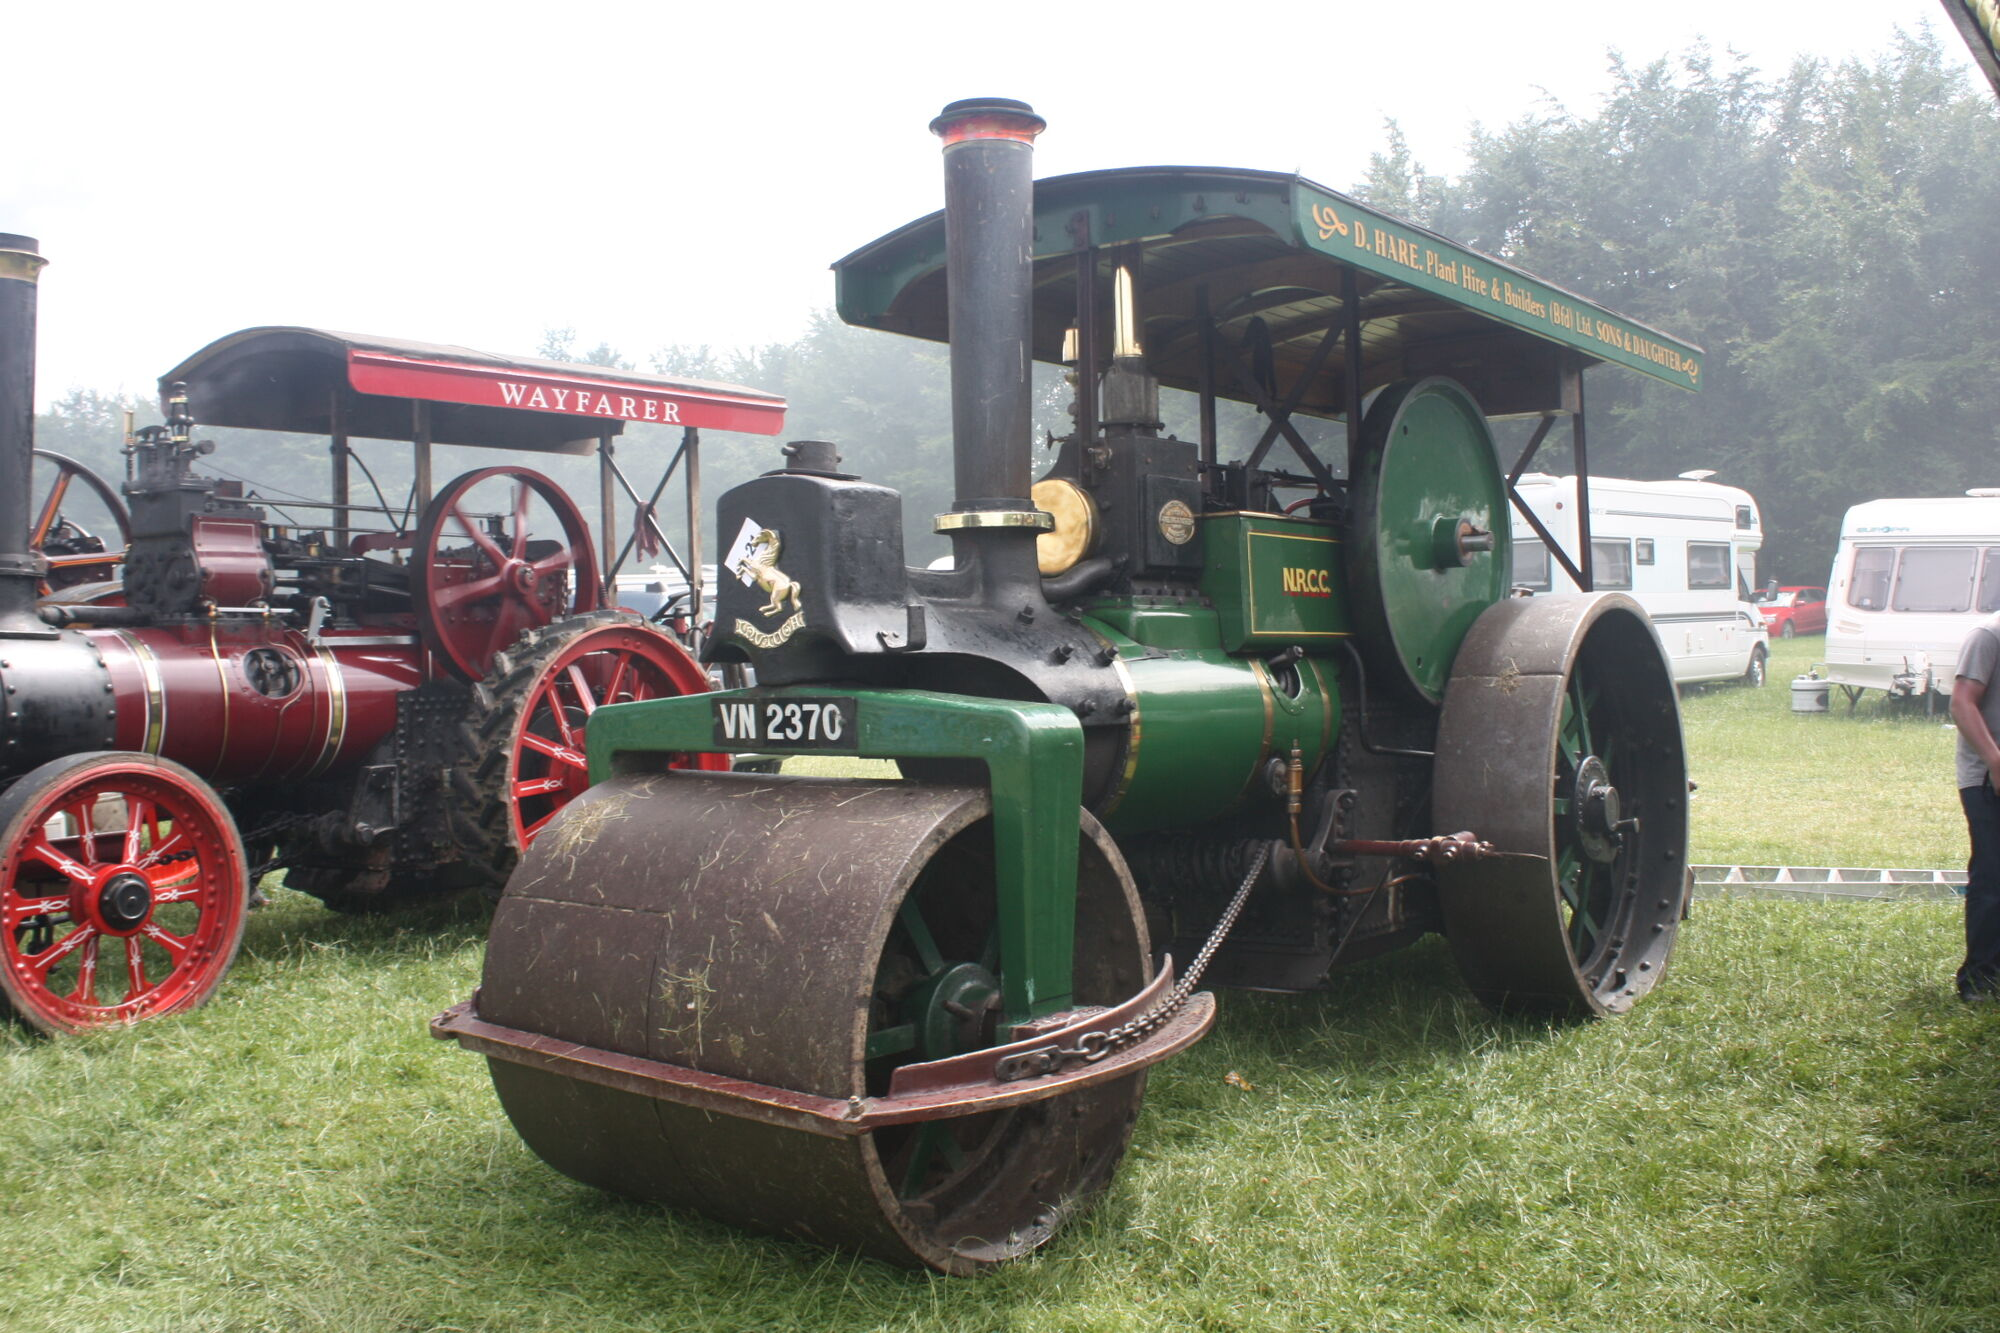 Duncombe park steam rally 2009 tractor construction plant wiki fandom powered by wikia - Porter international wiki ...